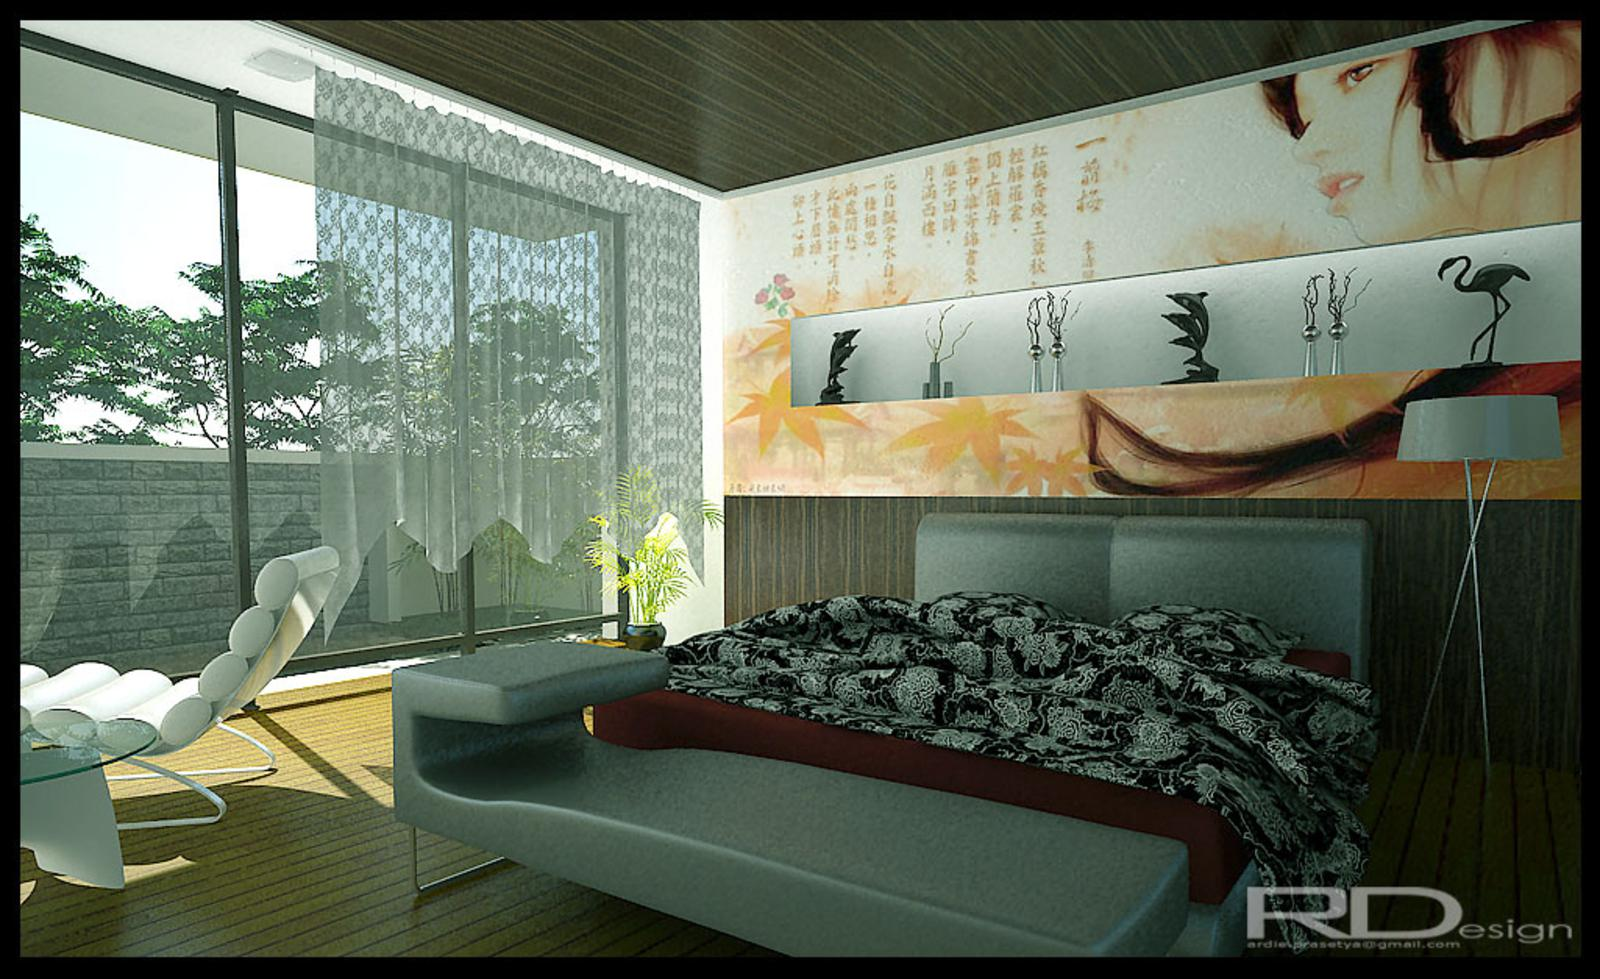 luxury modern bedroom reviewed on thursday june 14 2012 rating 4 5